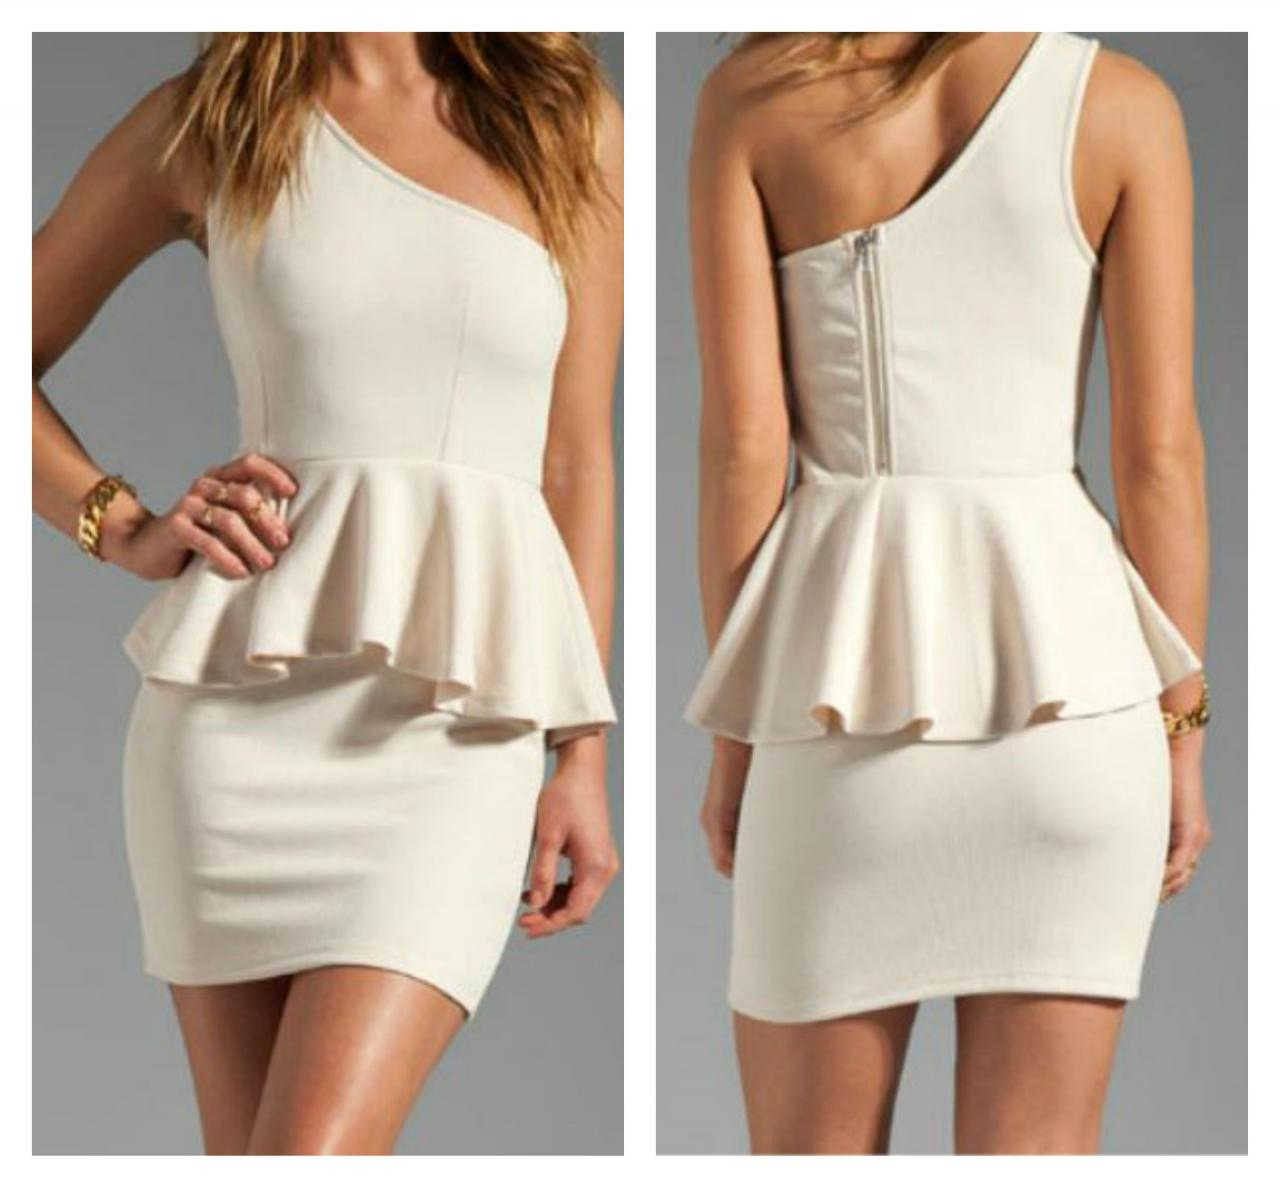 a3b8be86ad Elegant One Shoulder Sleeveless White Peplum Dress on Luulla